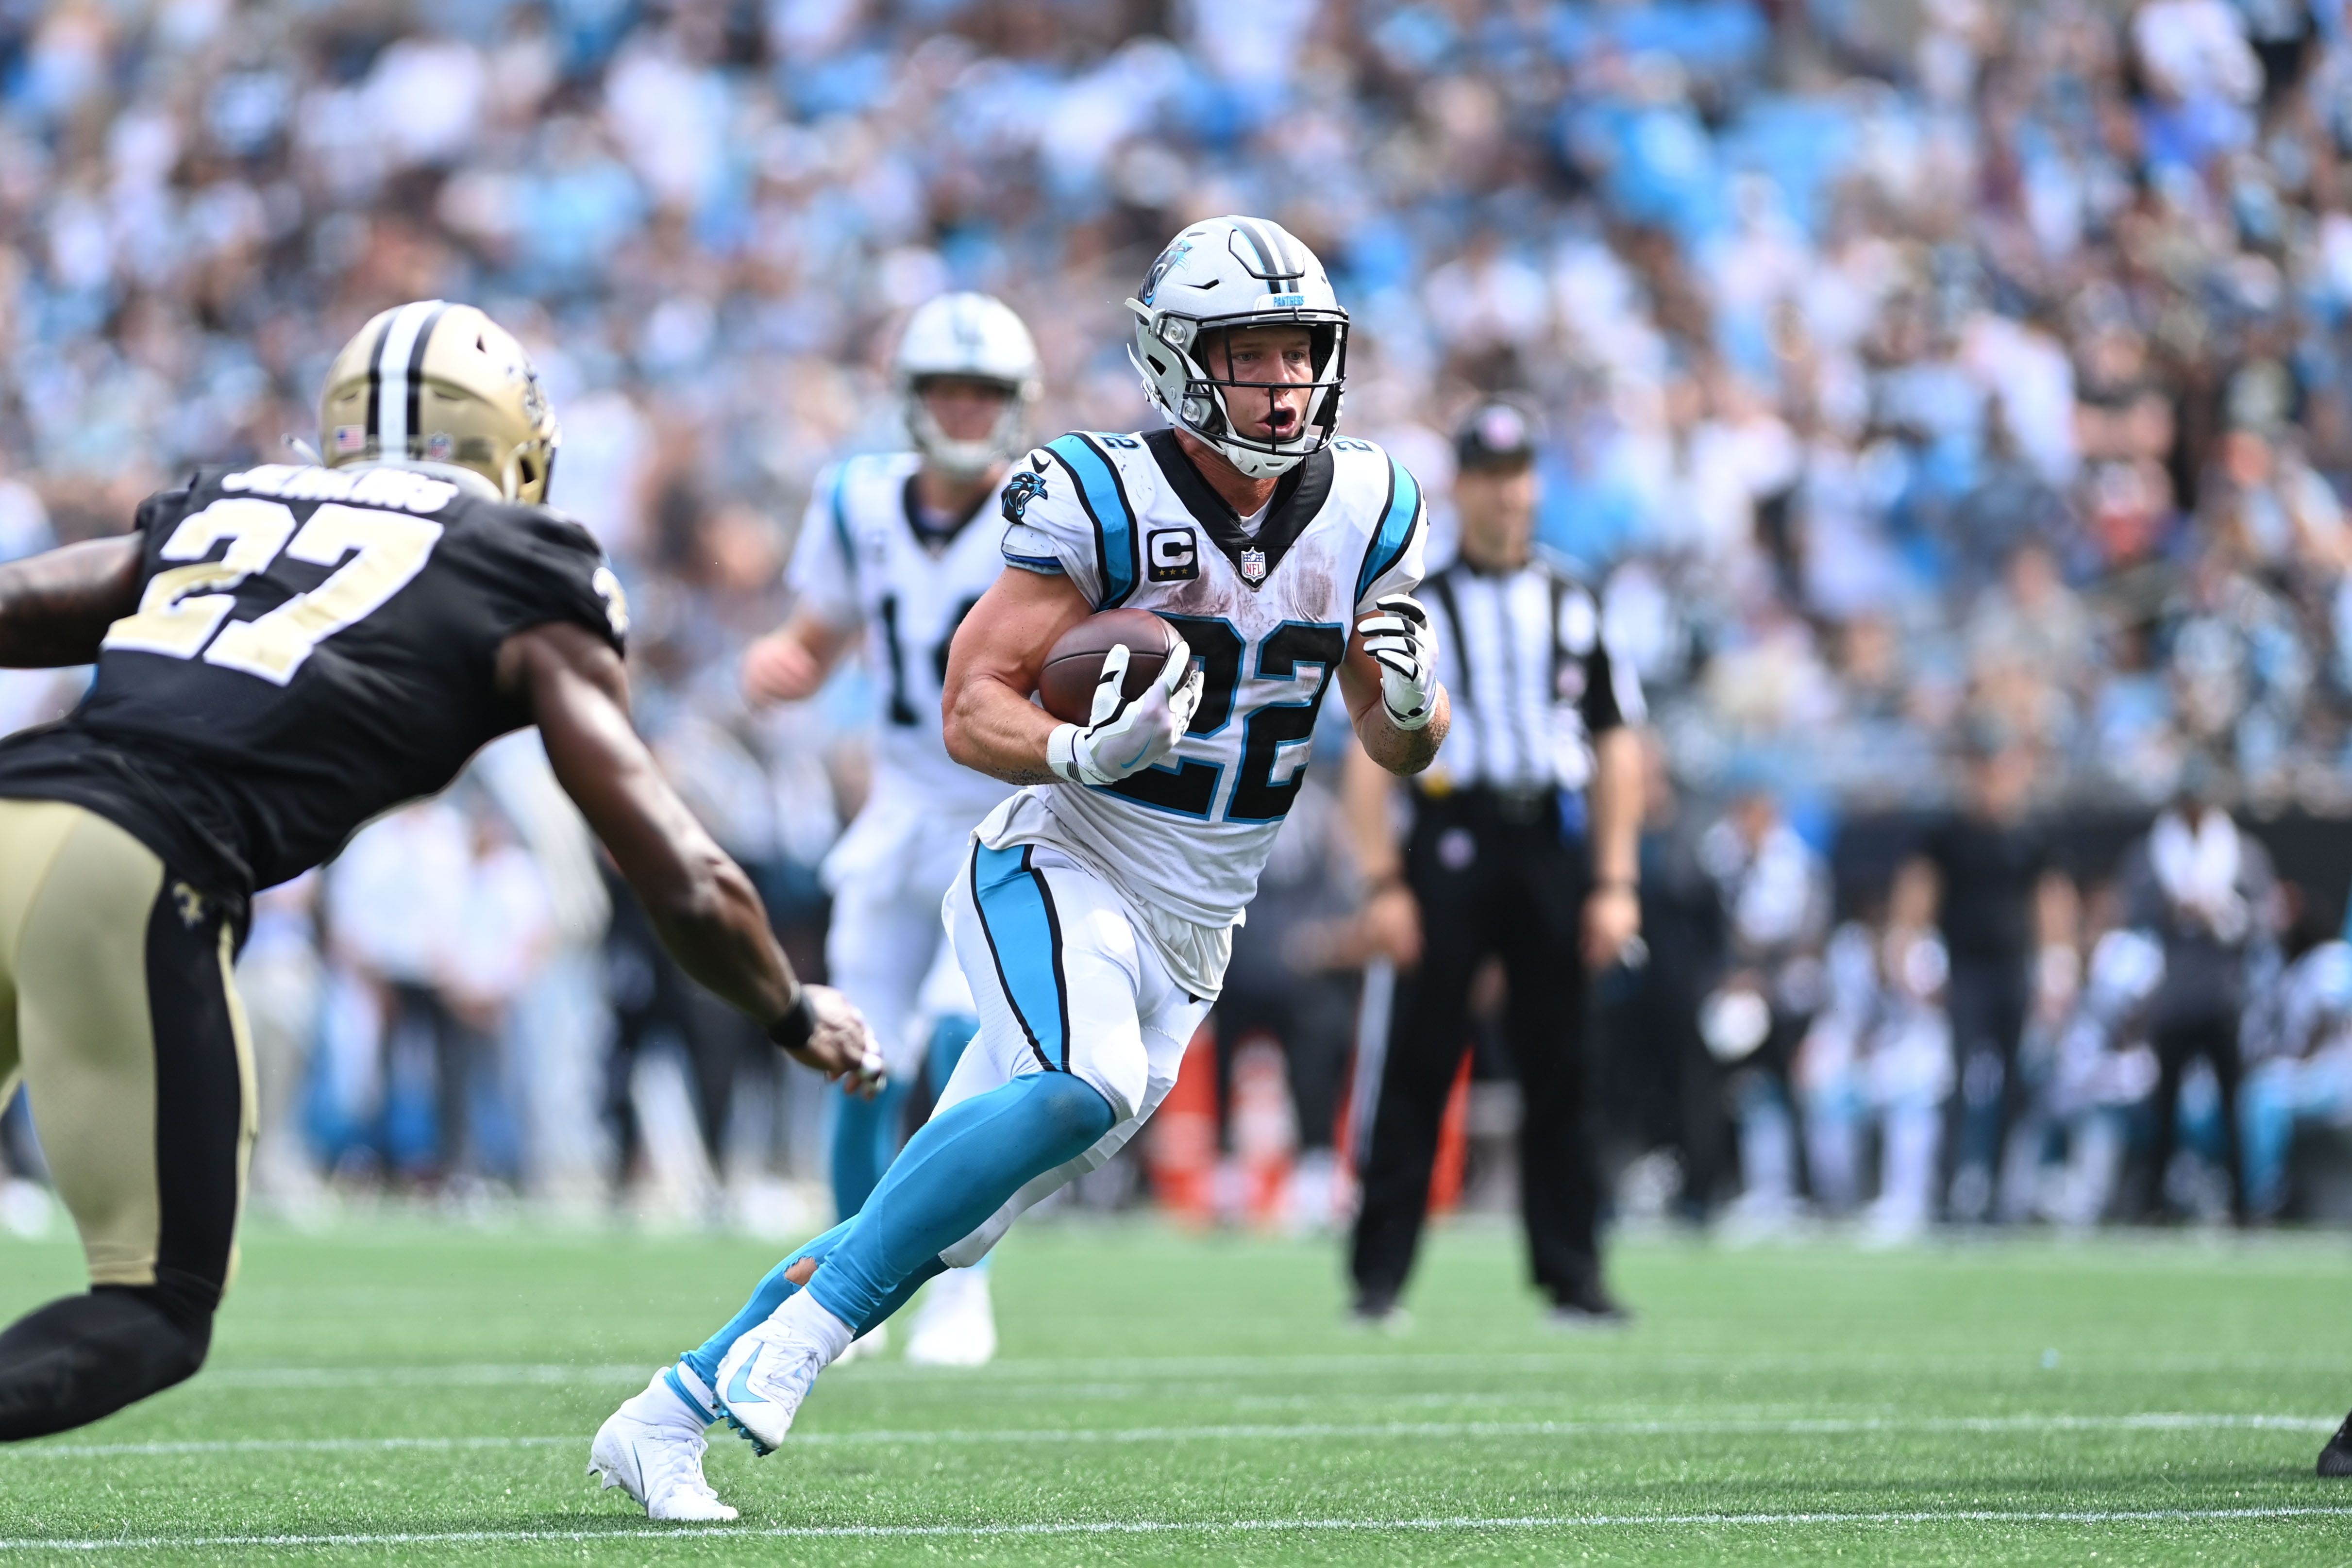 Carolina Panthers running back Christian McCaffrey (22) runs for a touchdown as New Orleans Saints strong safety Malcolm Jenkins (27) defends in the fourth quarter at Bank of America Stadium.